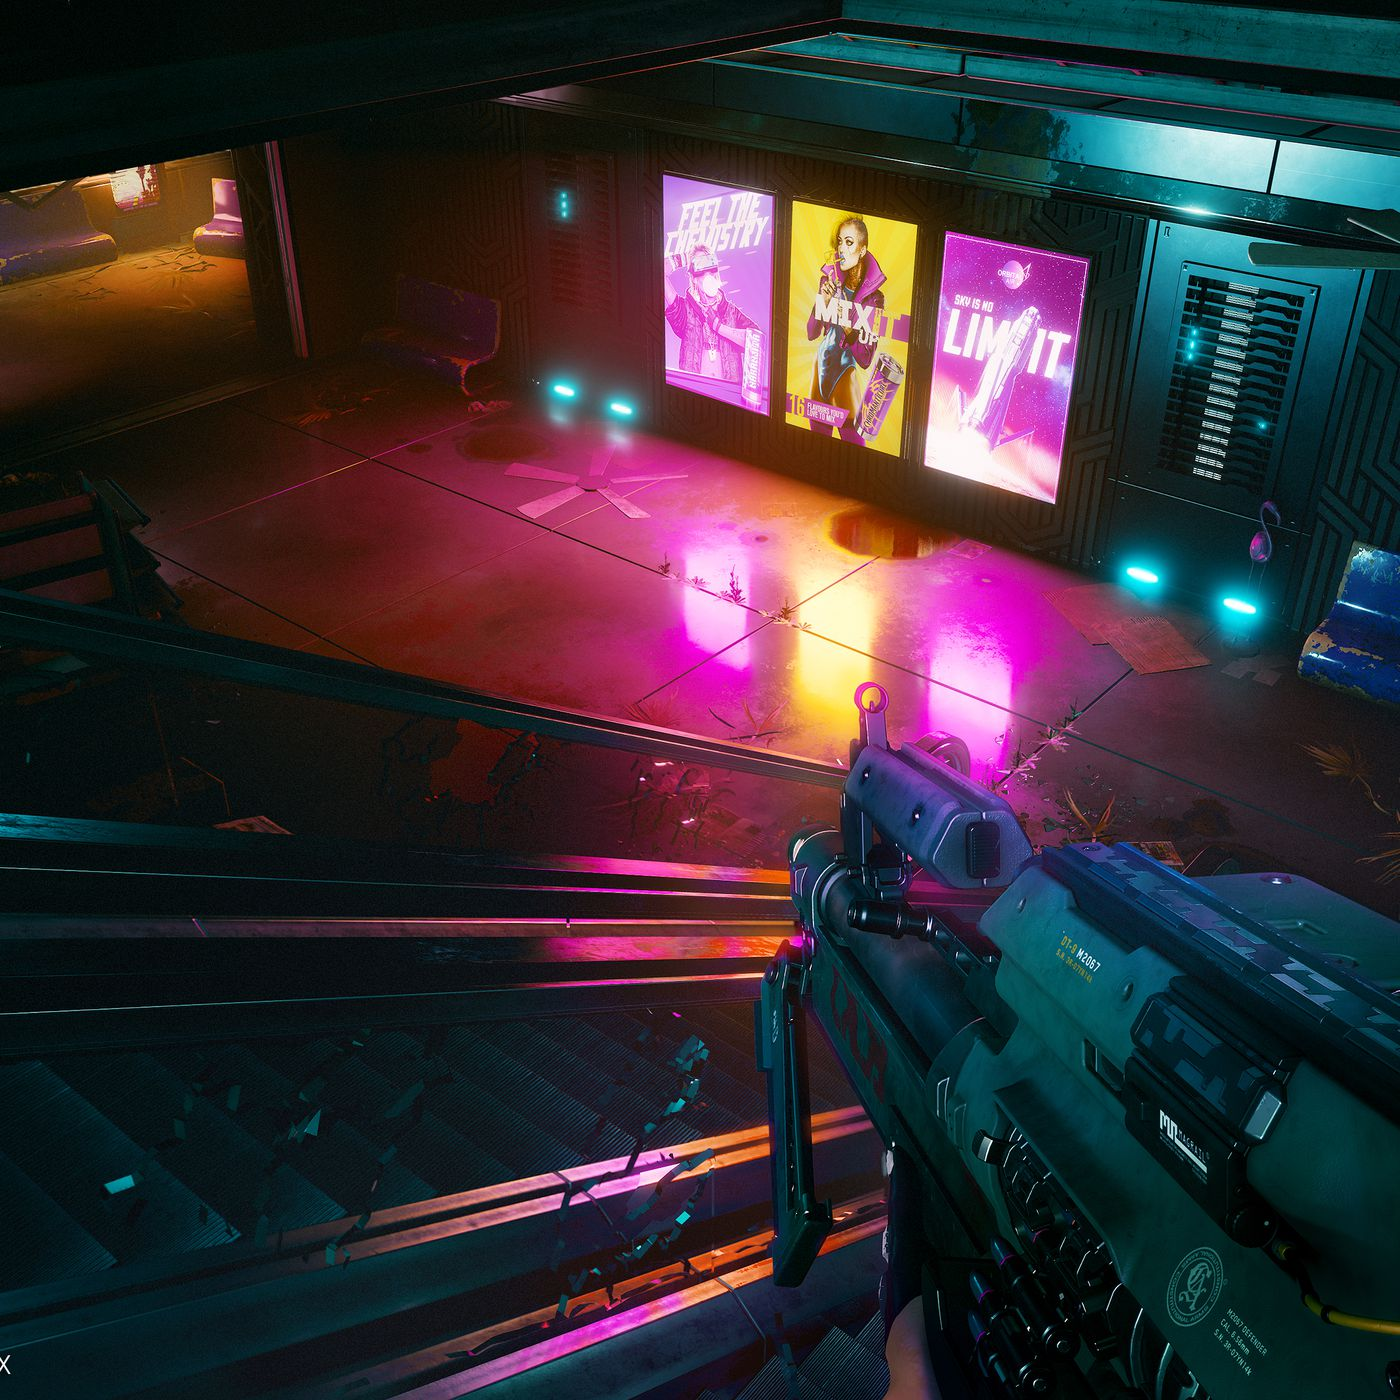 polygon.com - Stacey Henley - It sucks that Cyberpunk 2077's edgelord marketing worked so well